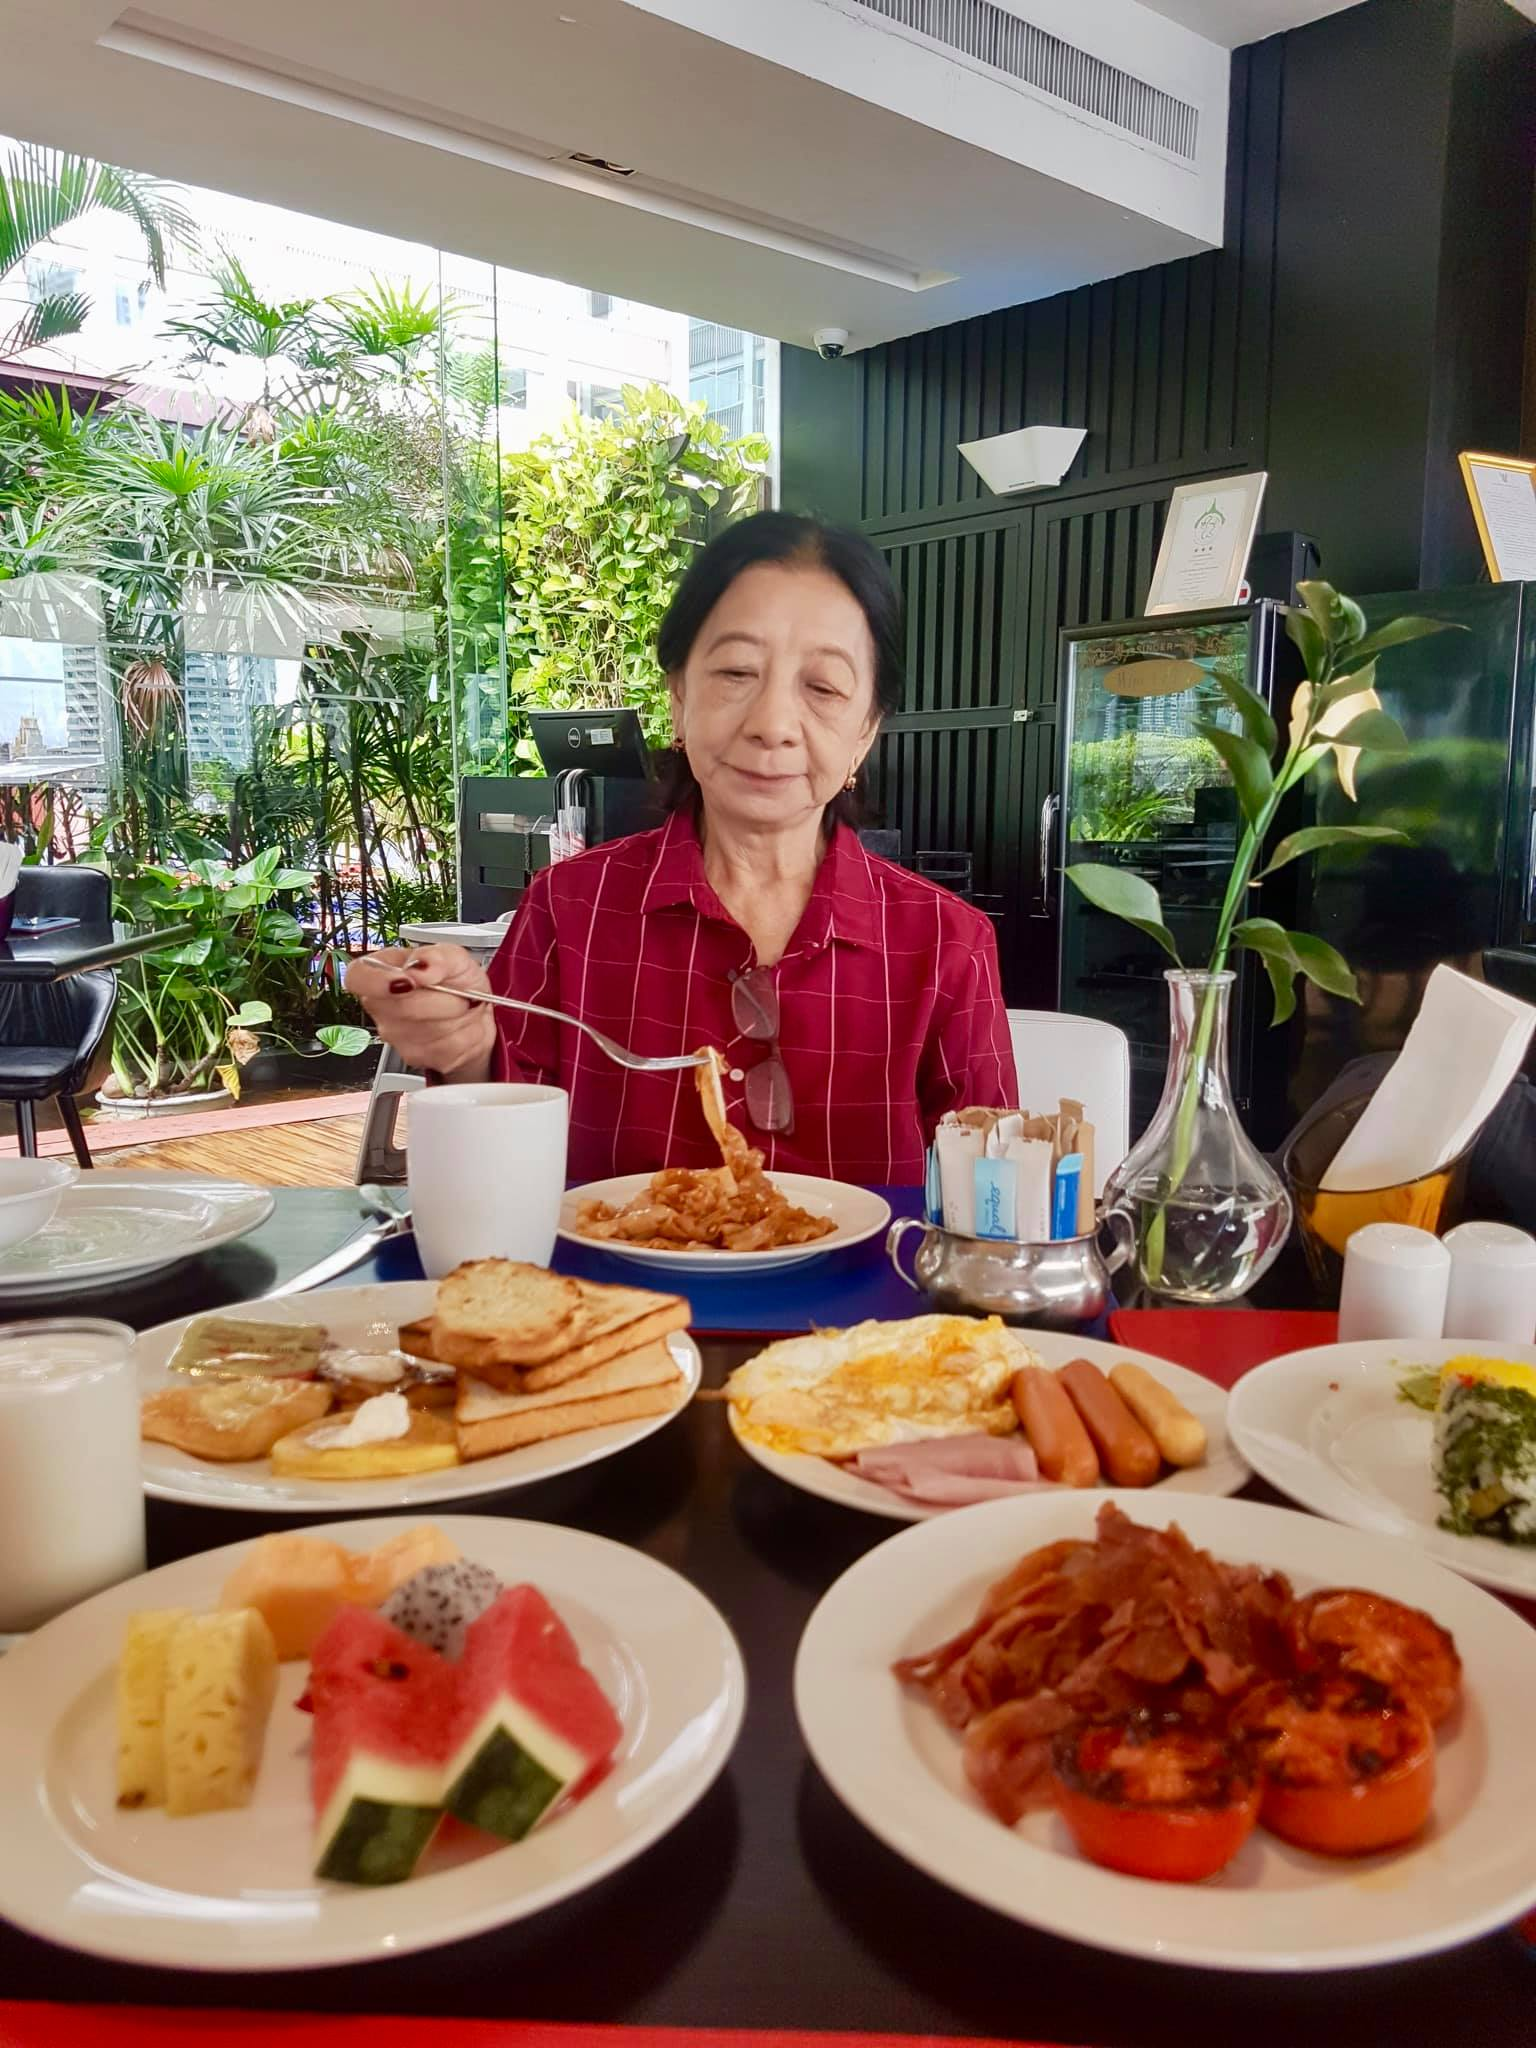 Our Luxurious Staycation At Ramada Plaza In Bangkok And Our Tour With Tinggly Experiences8